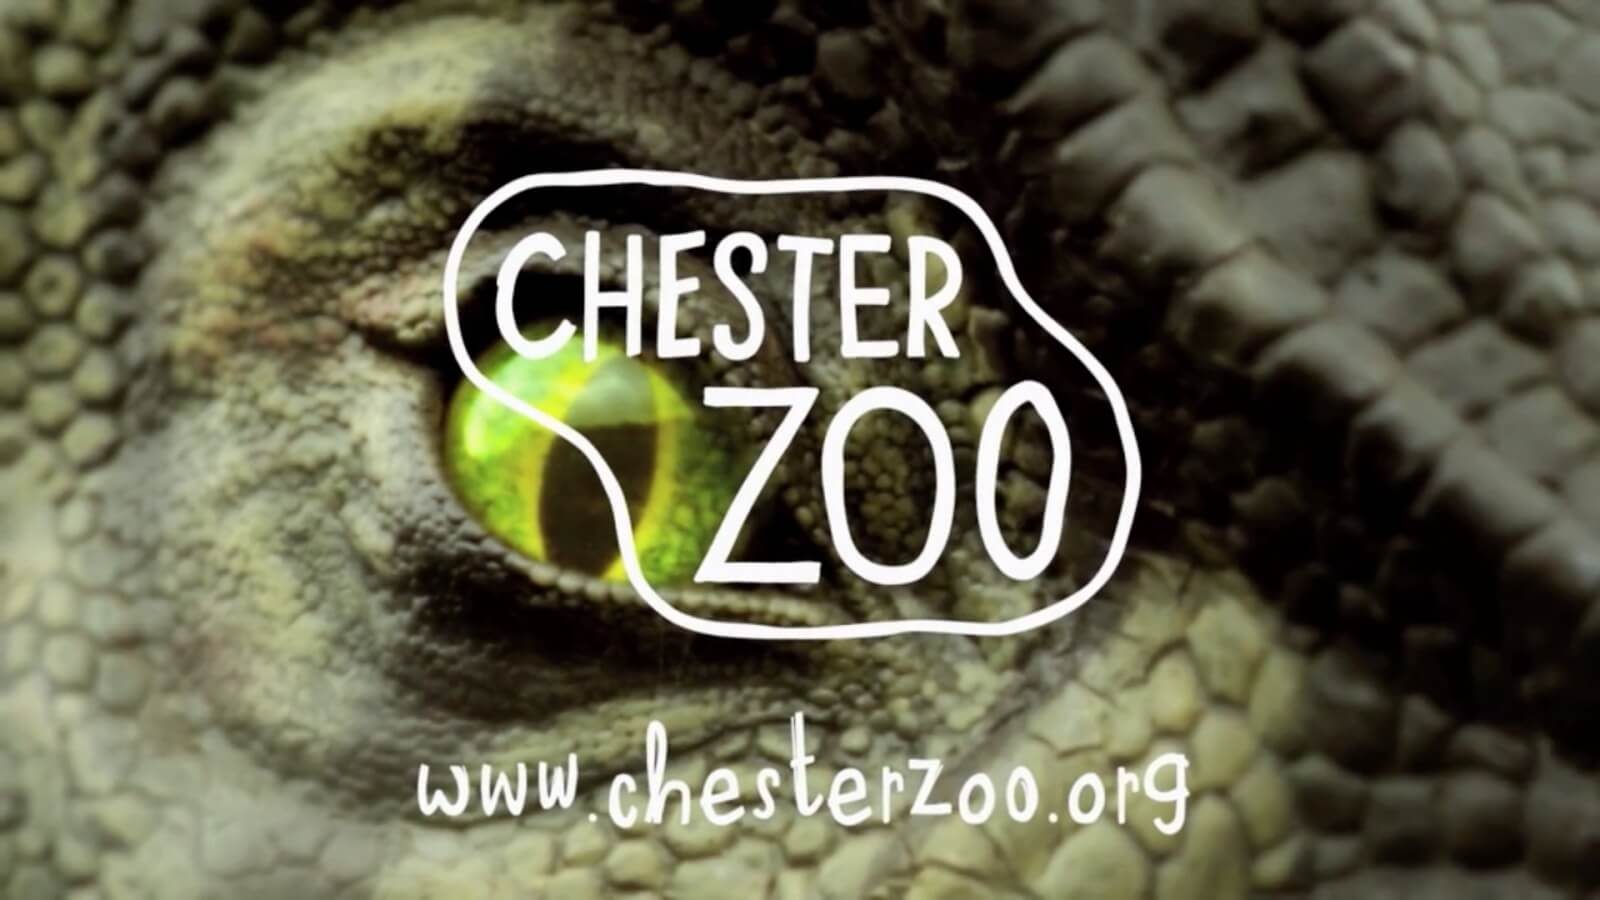 12 Music Chester Zoo Dinosaurs TV Advertisement